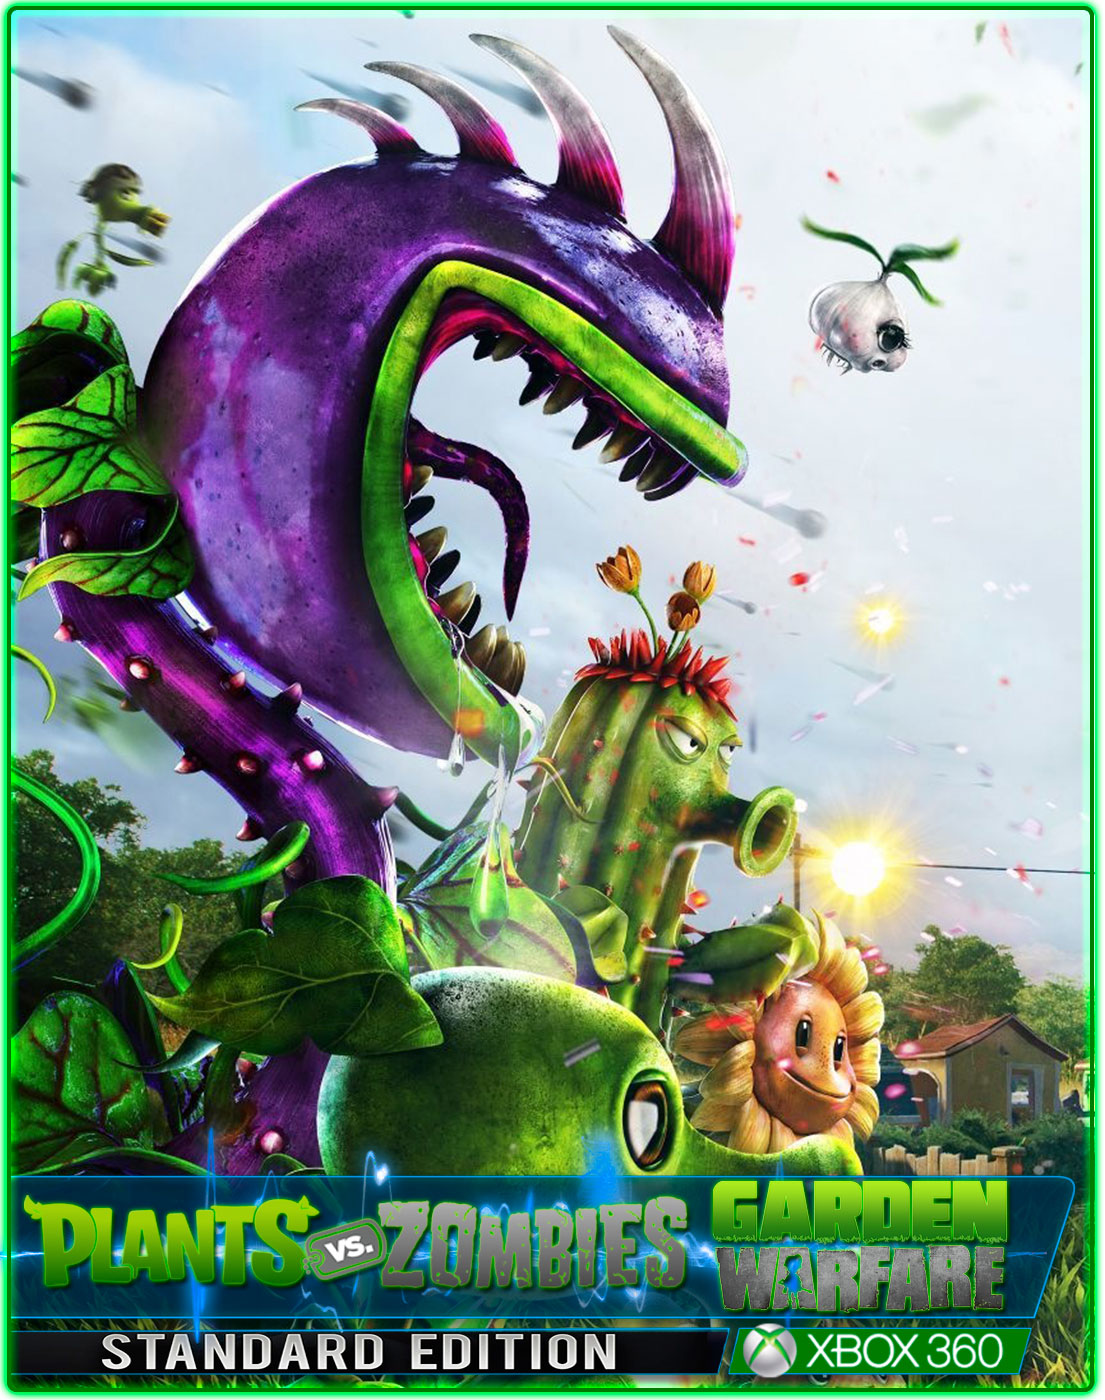 plants vs zombies garden warfare xbox 360 need gold - Plants Vs Zombies Garden Warfare Xbox 360